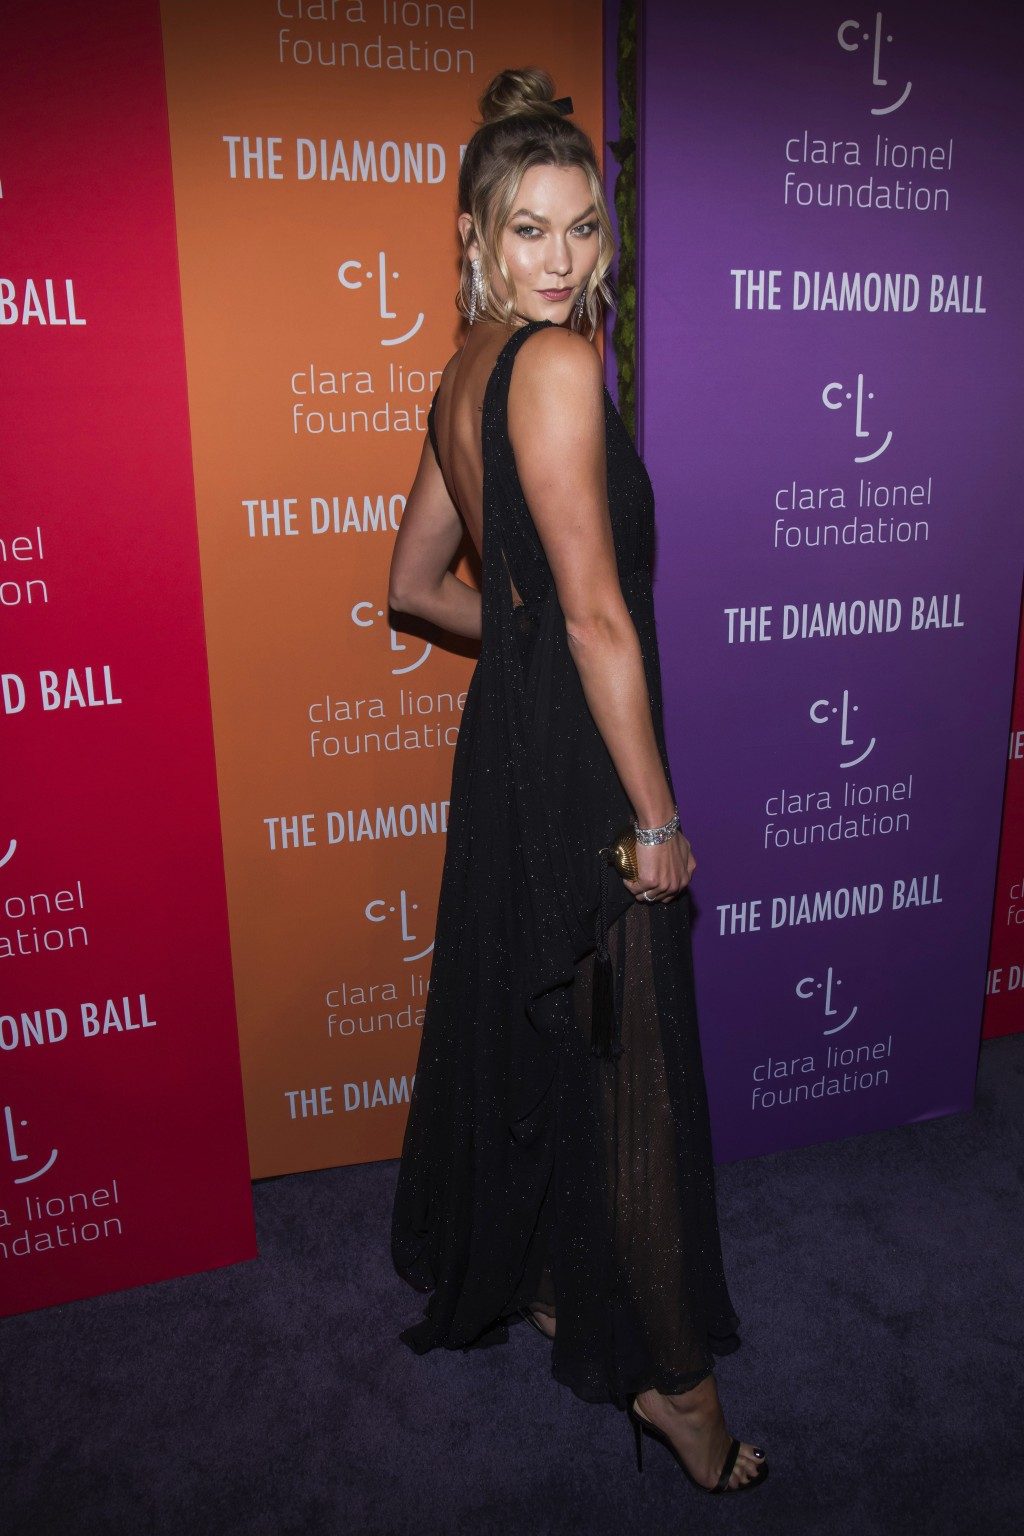 Karlie Kloss attends the 5th annual Diamond Ball benefit gala at Cipriani Wall Street on Thursday, Sept. 12, 2019, in New York. (Photo by Charles Syke...